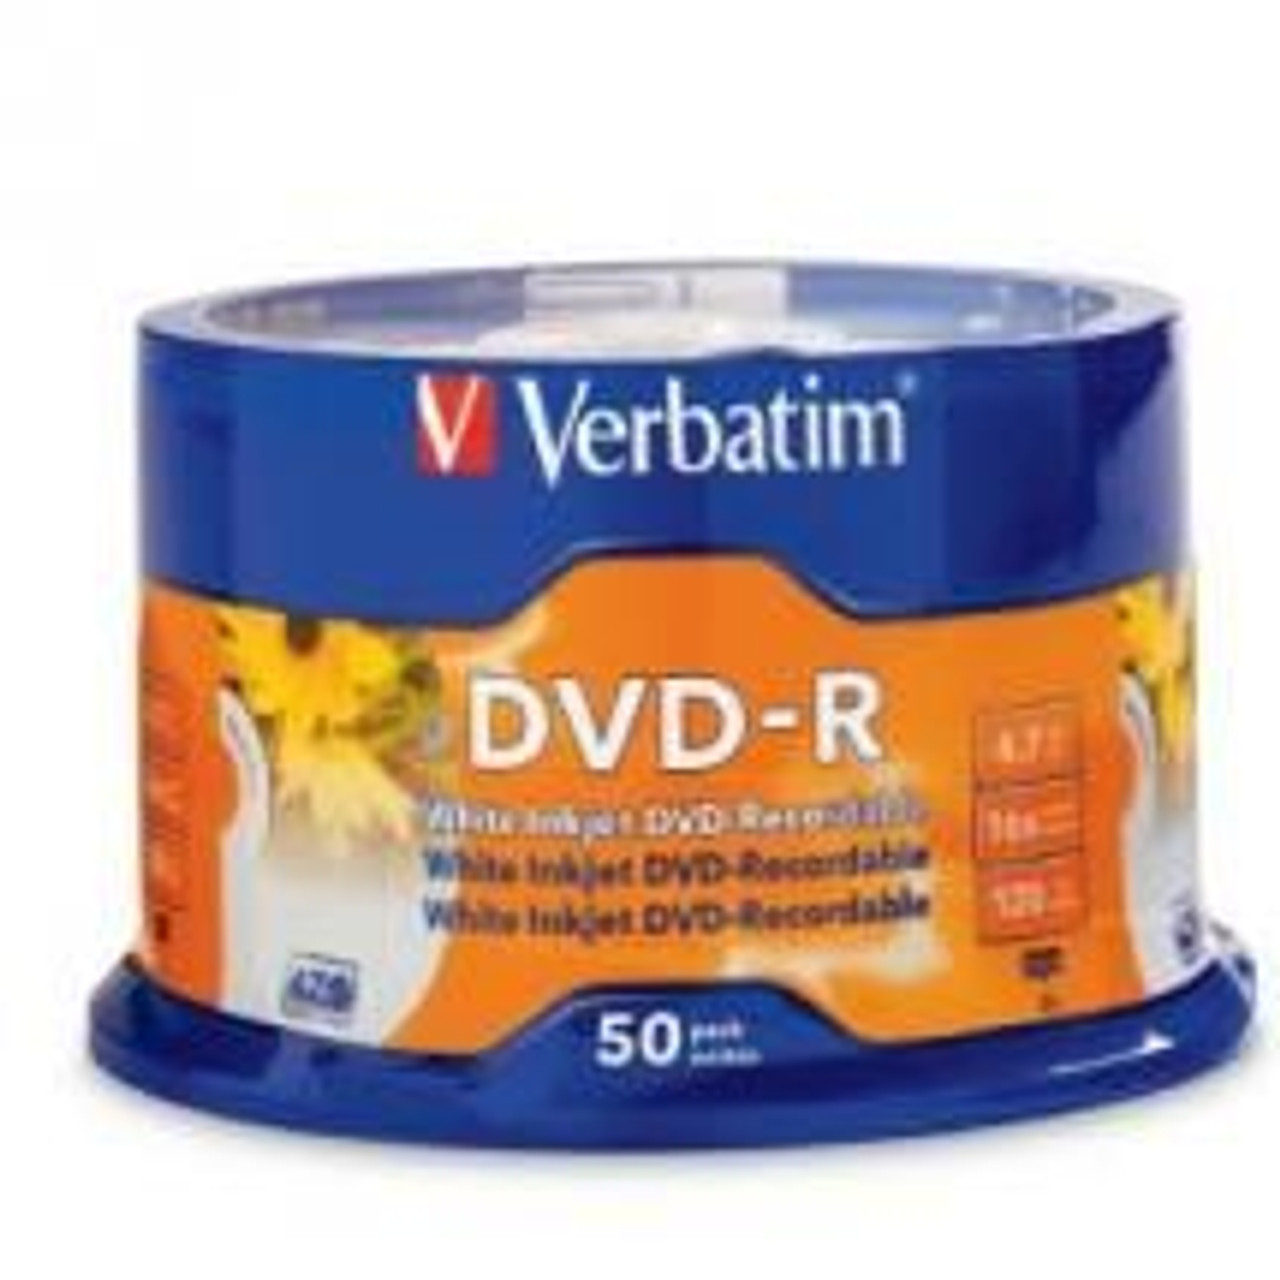 Product image for Verbatim DVD-R16X 4.7GB 50PK 95137 | CX Computer Superstore